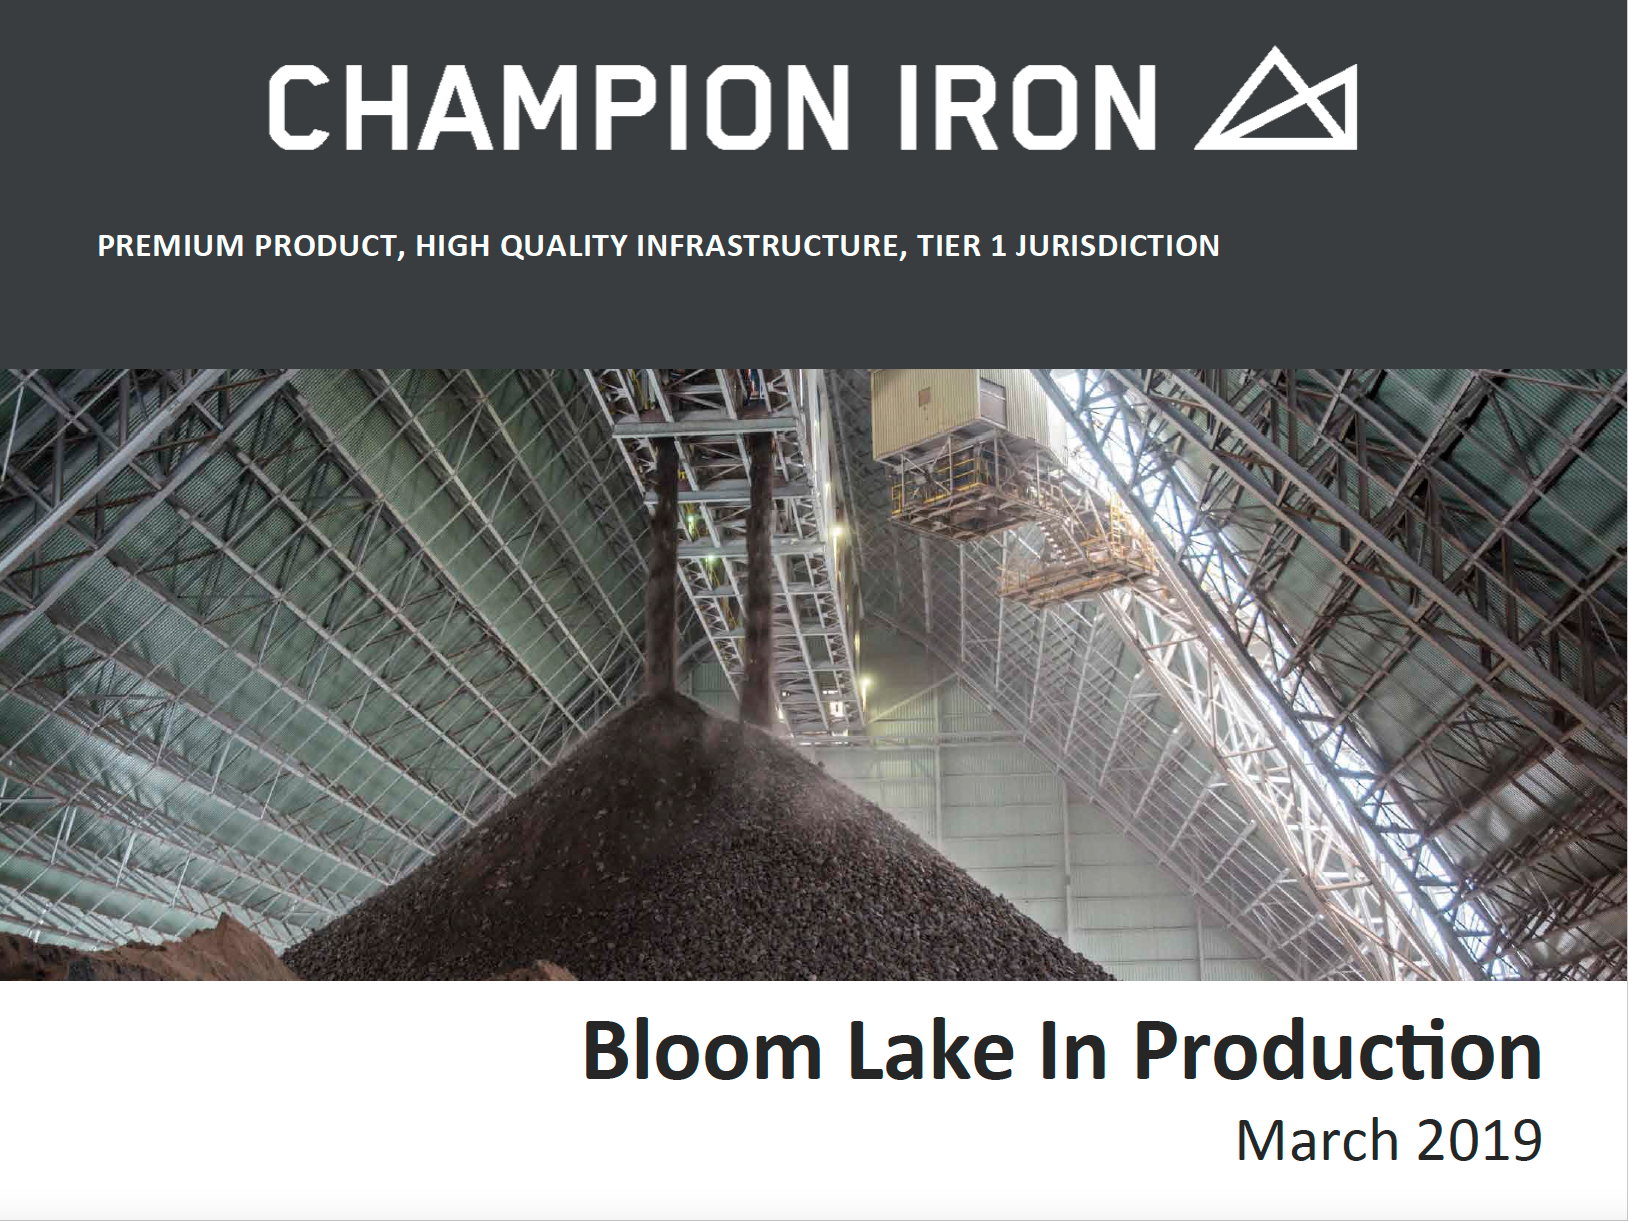 Bloom Lake in production, march 2019